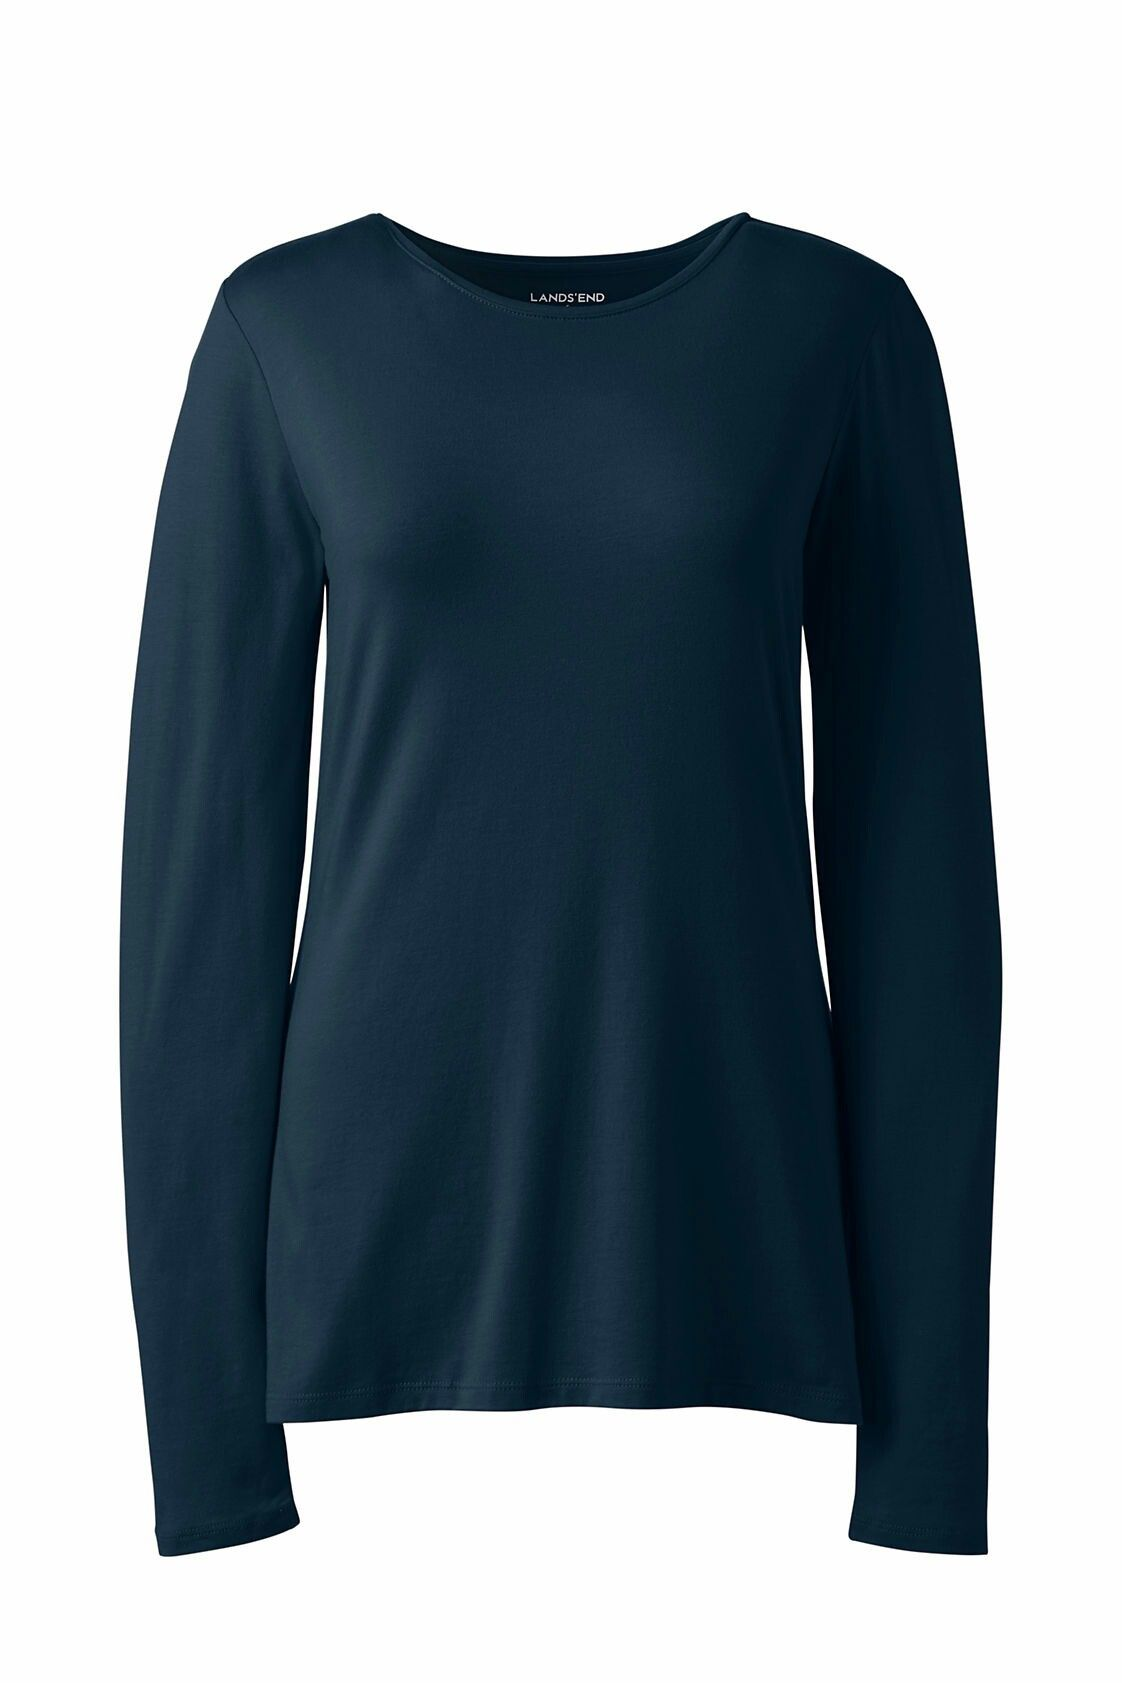 Land's End Shaped layering long sleeve crewneck tshirt in